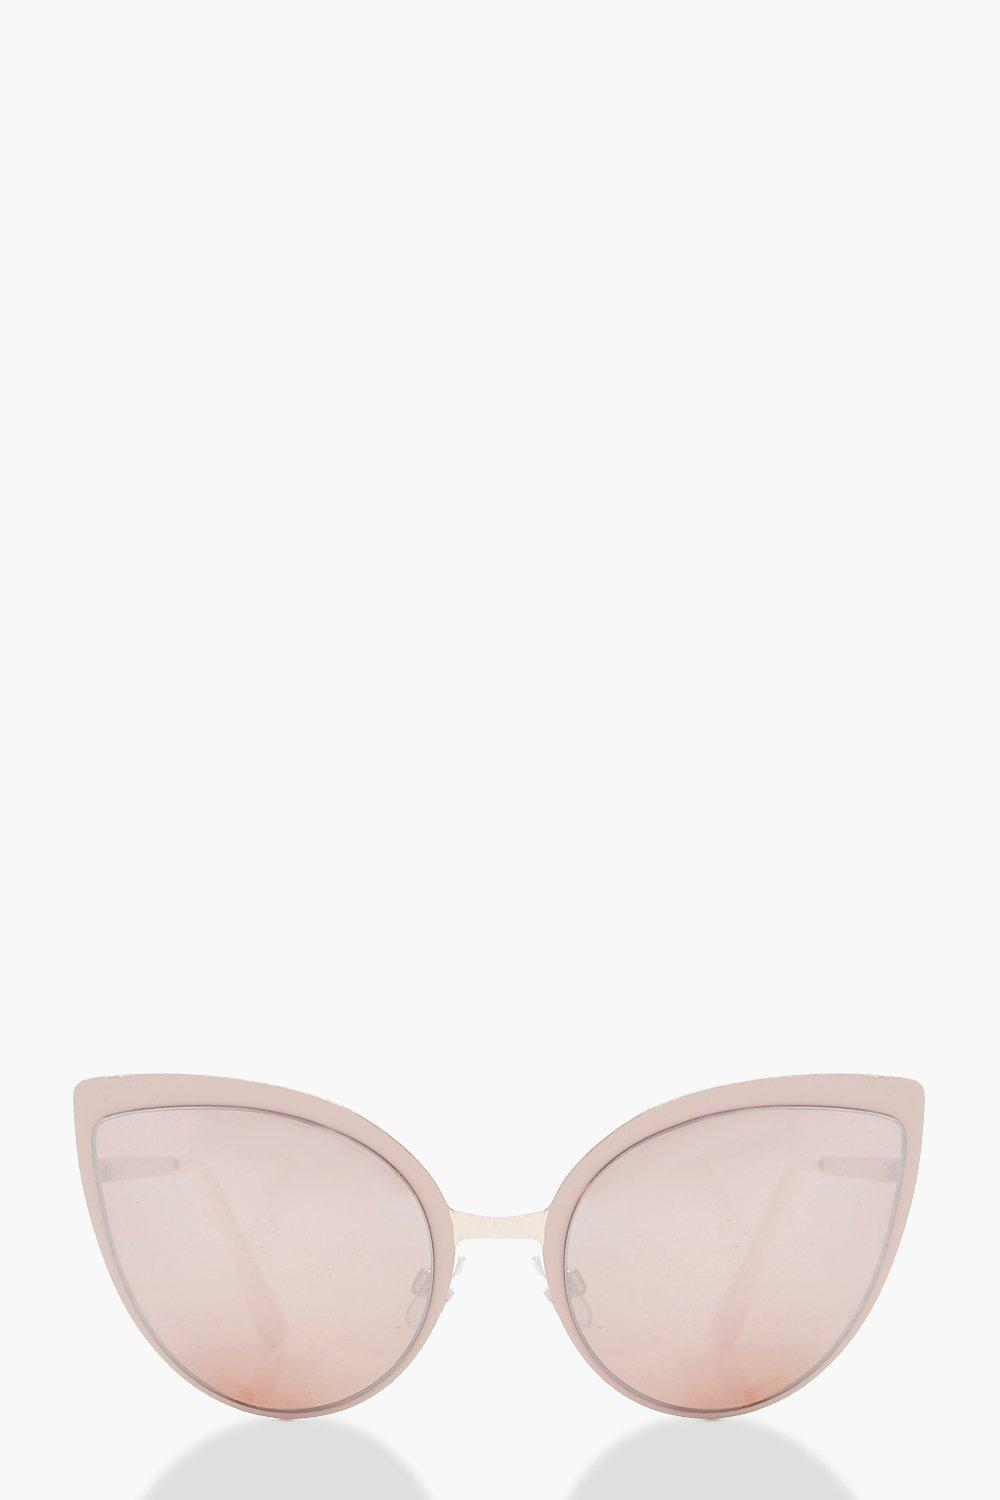 9d905f12b10 Oversize Cat Eye Pink Lens Sunglasses. Hover to zoom